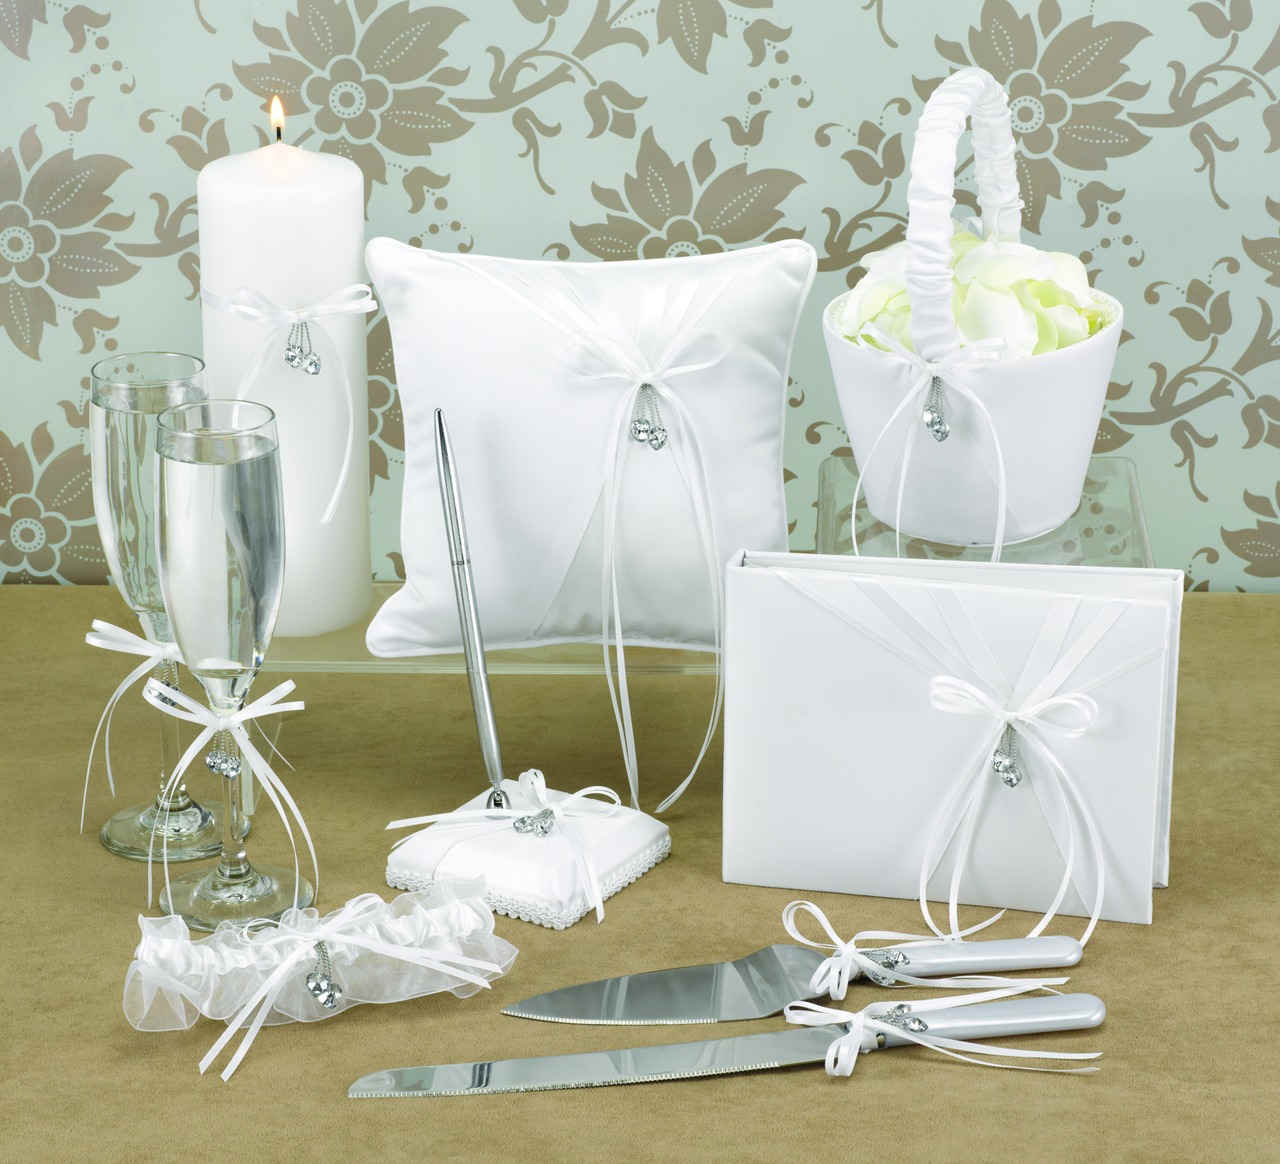 Wedding supplies romantic decoration up wedding supplies at the 10 reasons to shop sams club cakes for your wedding junglespirit Images